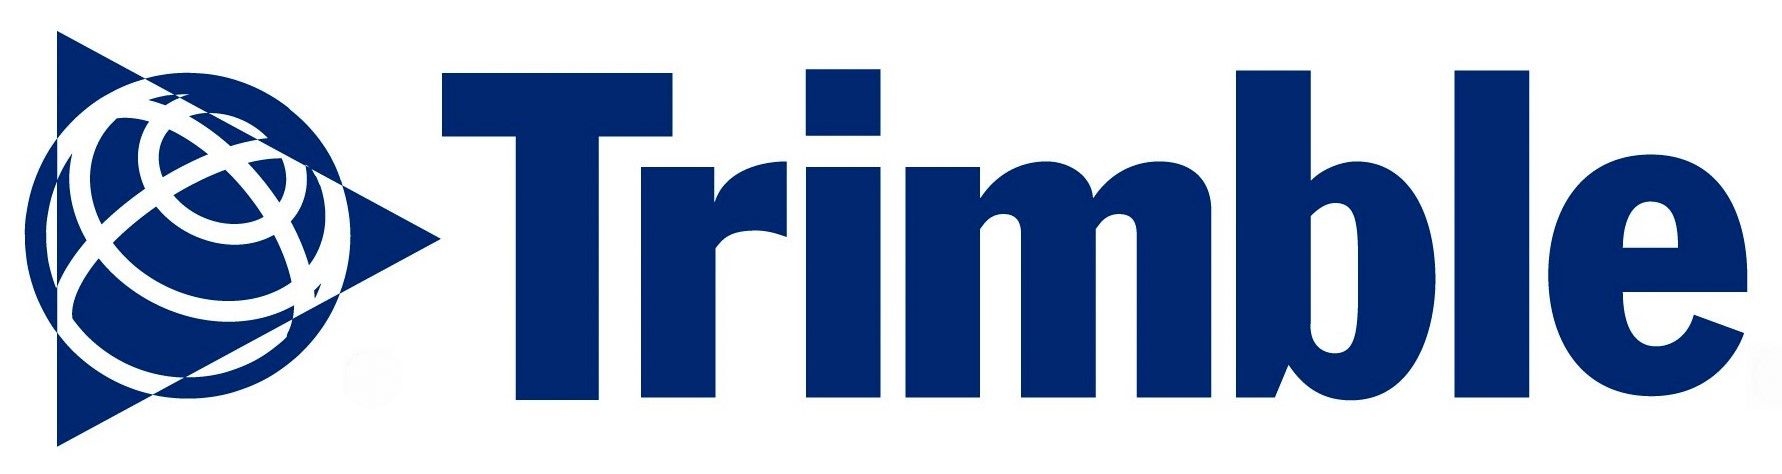 Trimble to acquire Viewpoint to create the industry's most ...